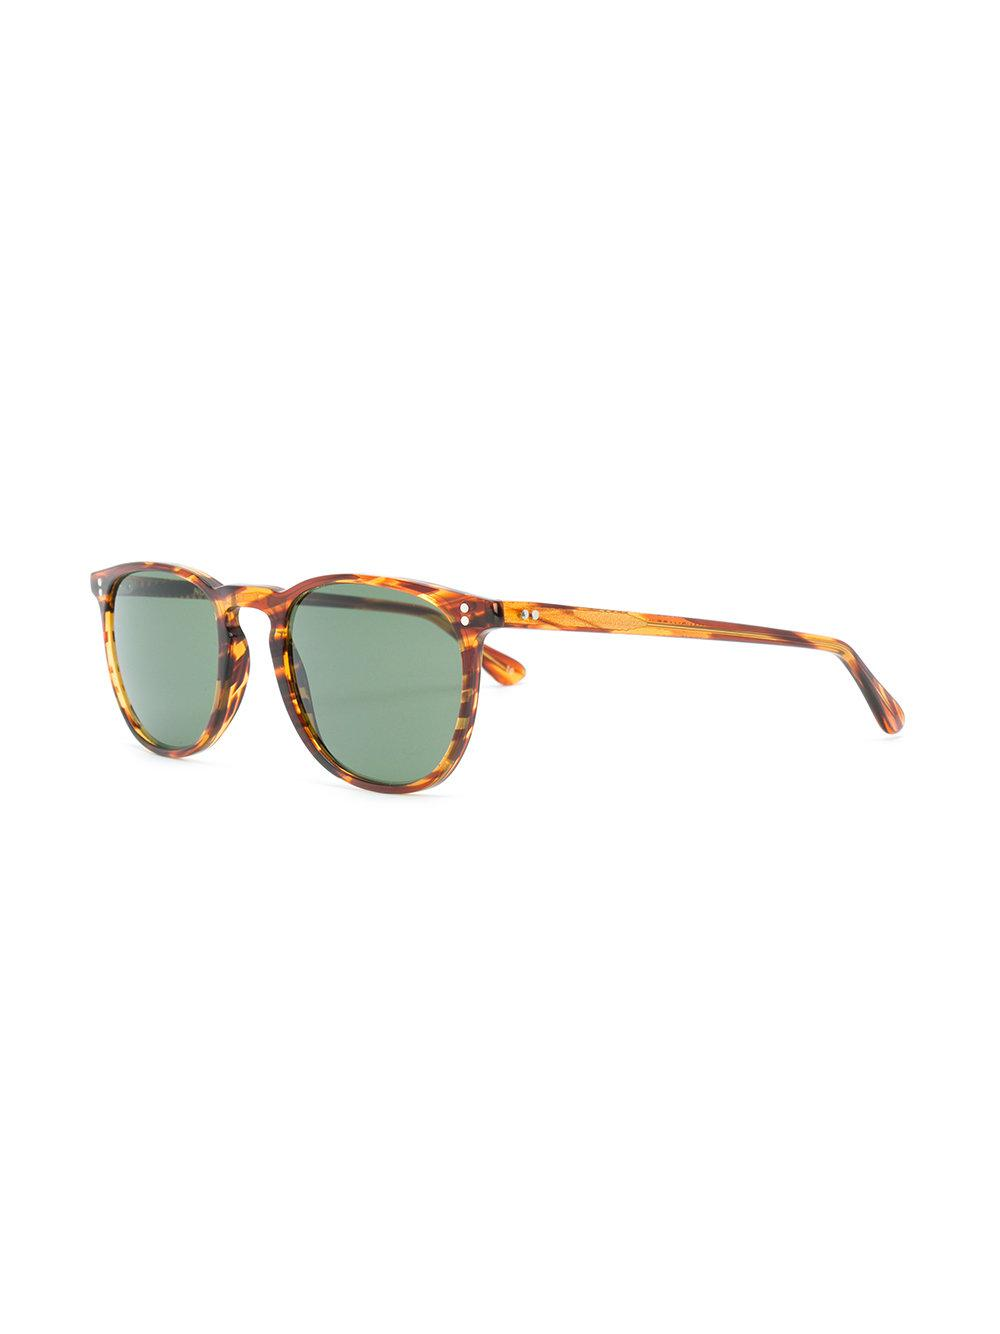 Lgr Streak Effect Round Frame Sunglasses in Brown